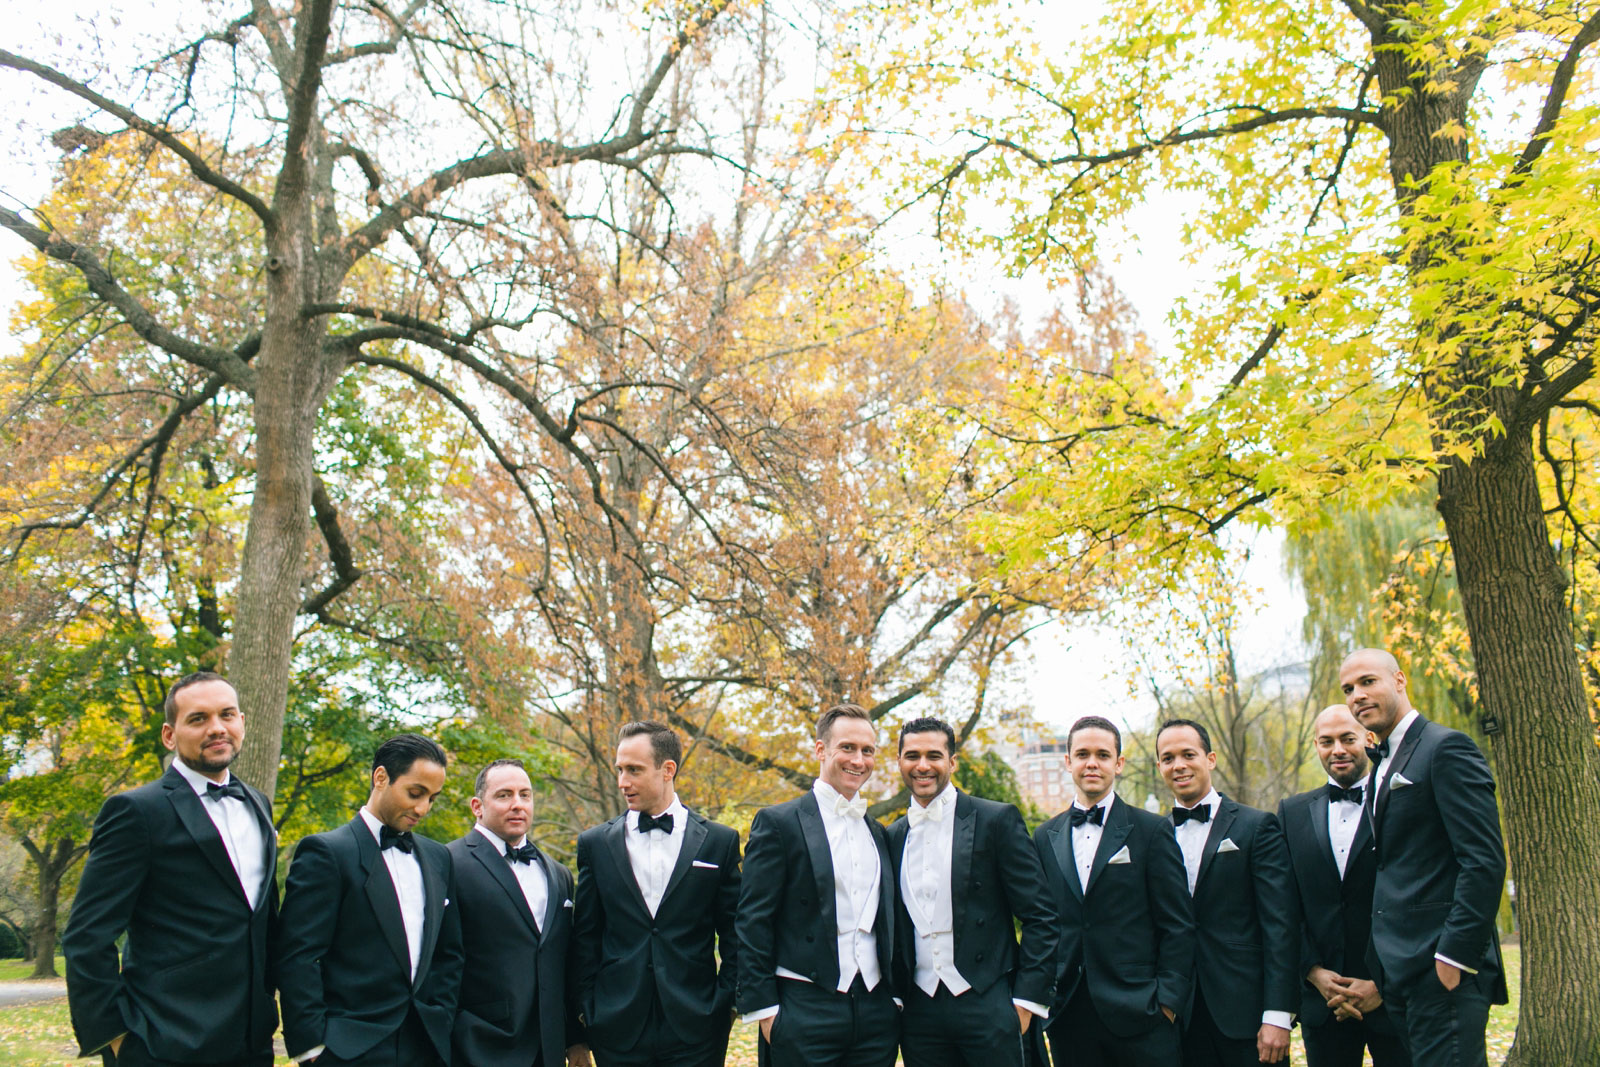 Candid groomsmen portrait standing under tree with bright fall foliage in Boston public gardens